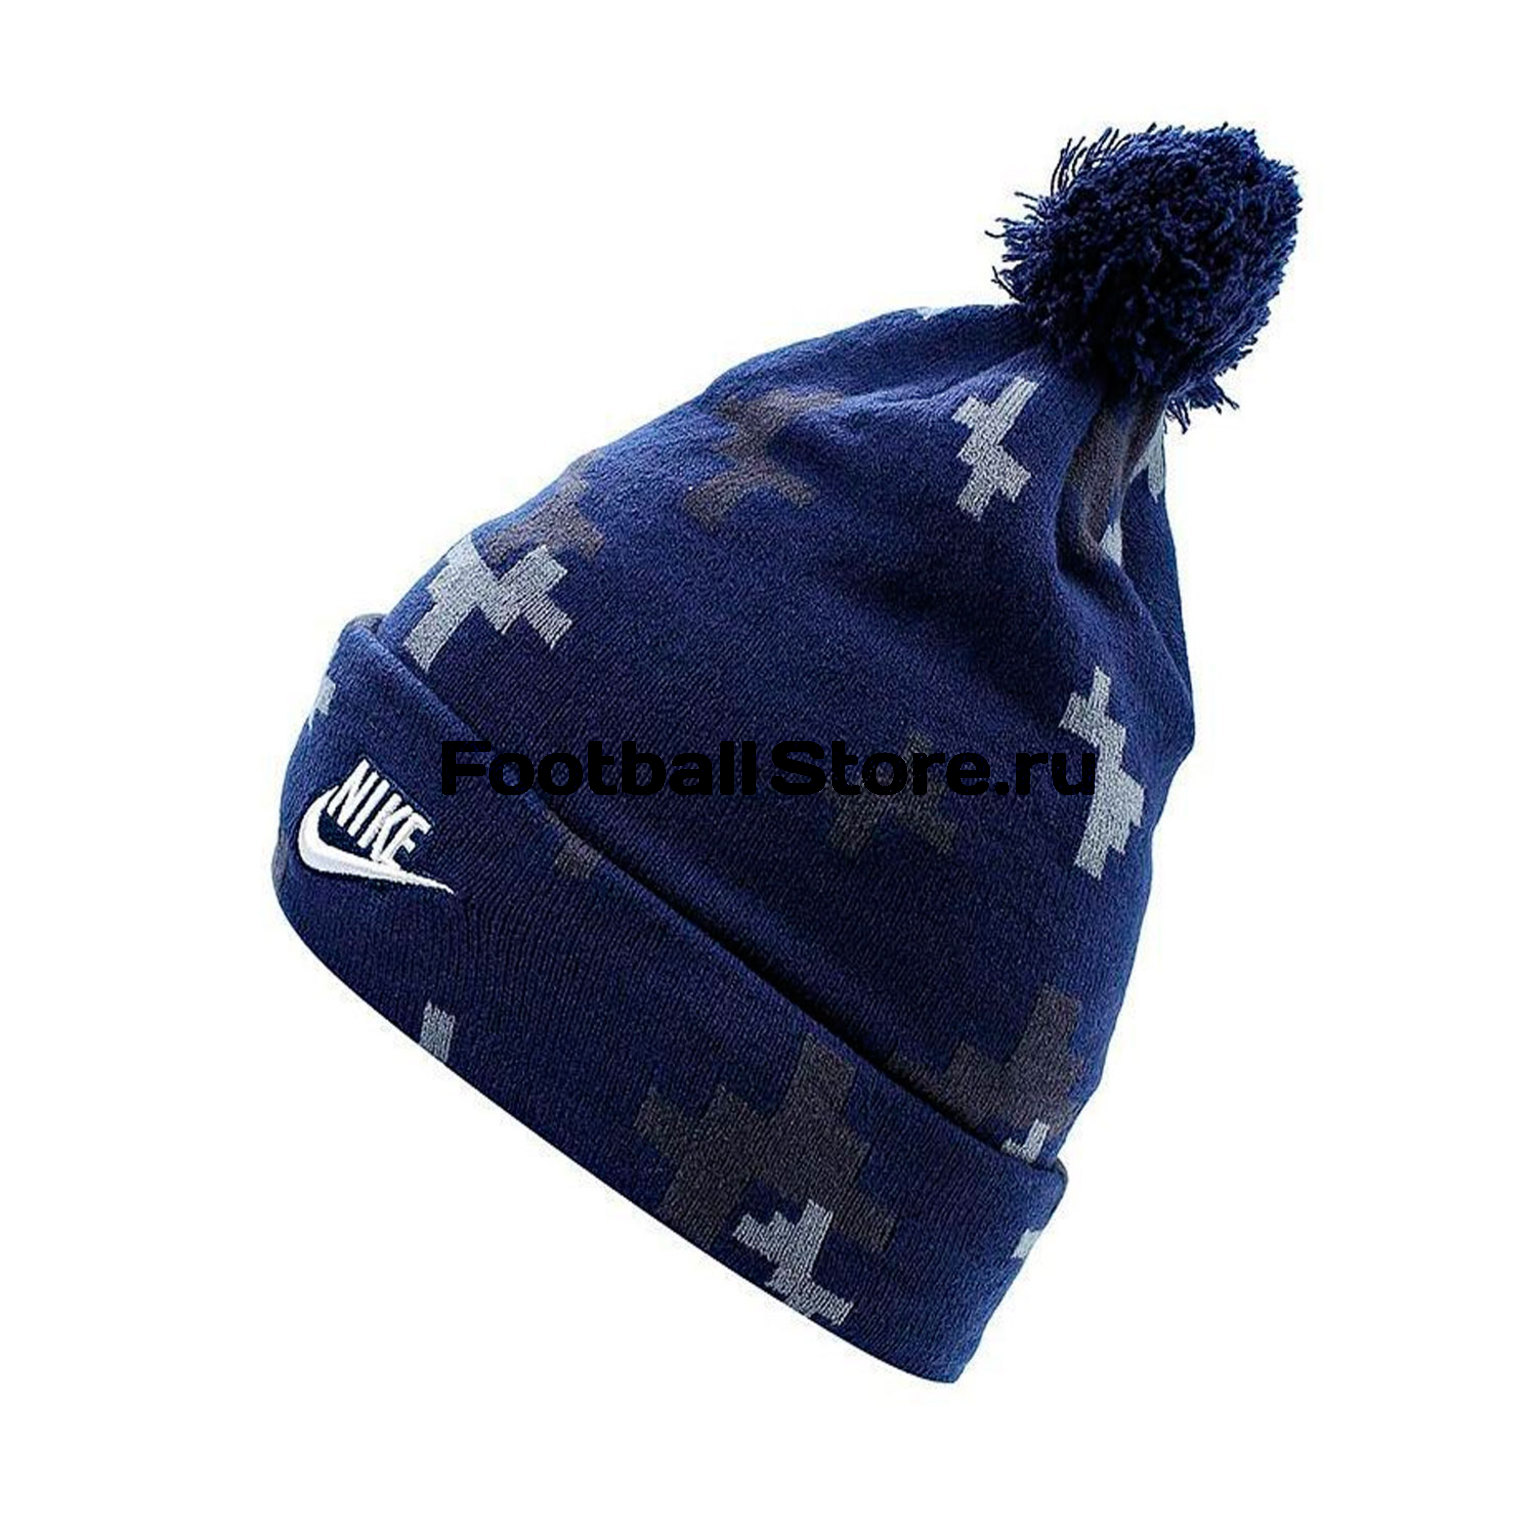 Головные уборы Nike Шапка Nike Seasonal Beanie Blue 878115-429 шапка canada goose 5292l 717